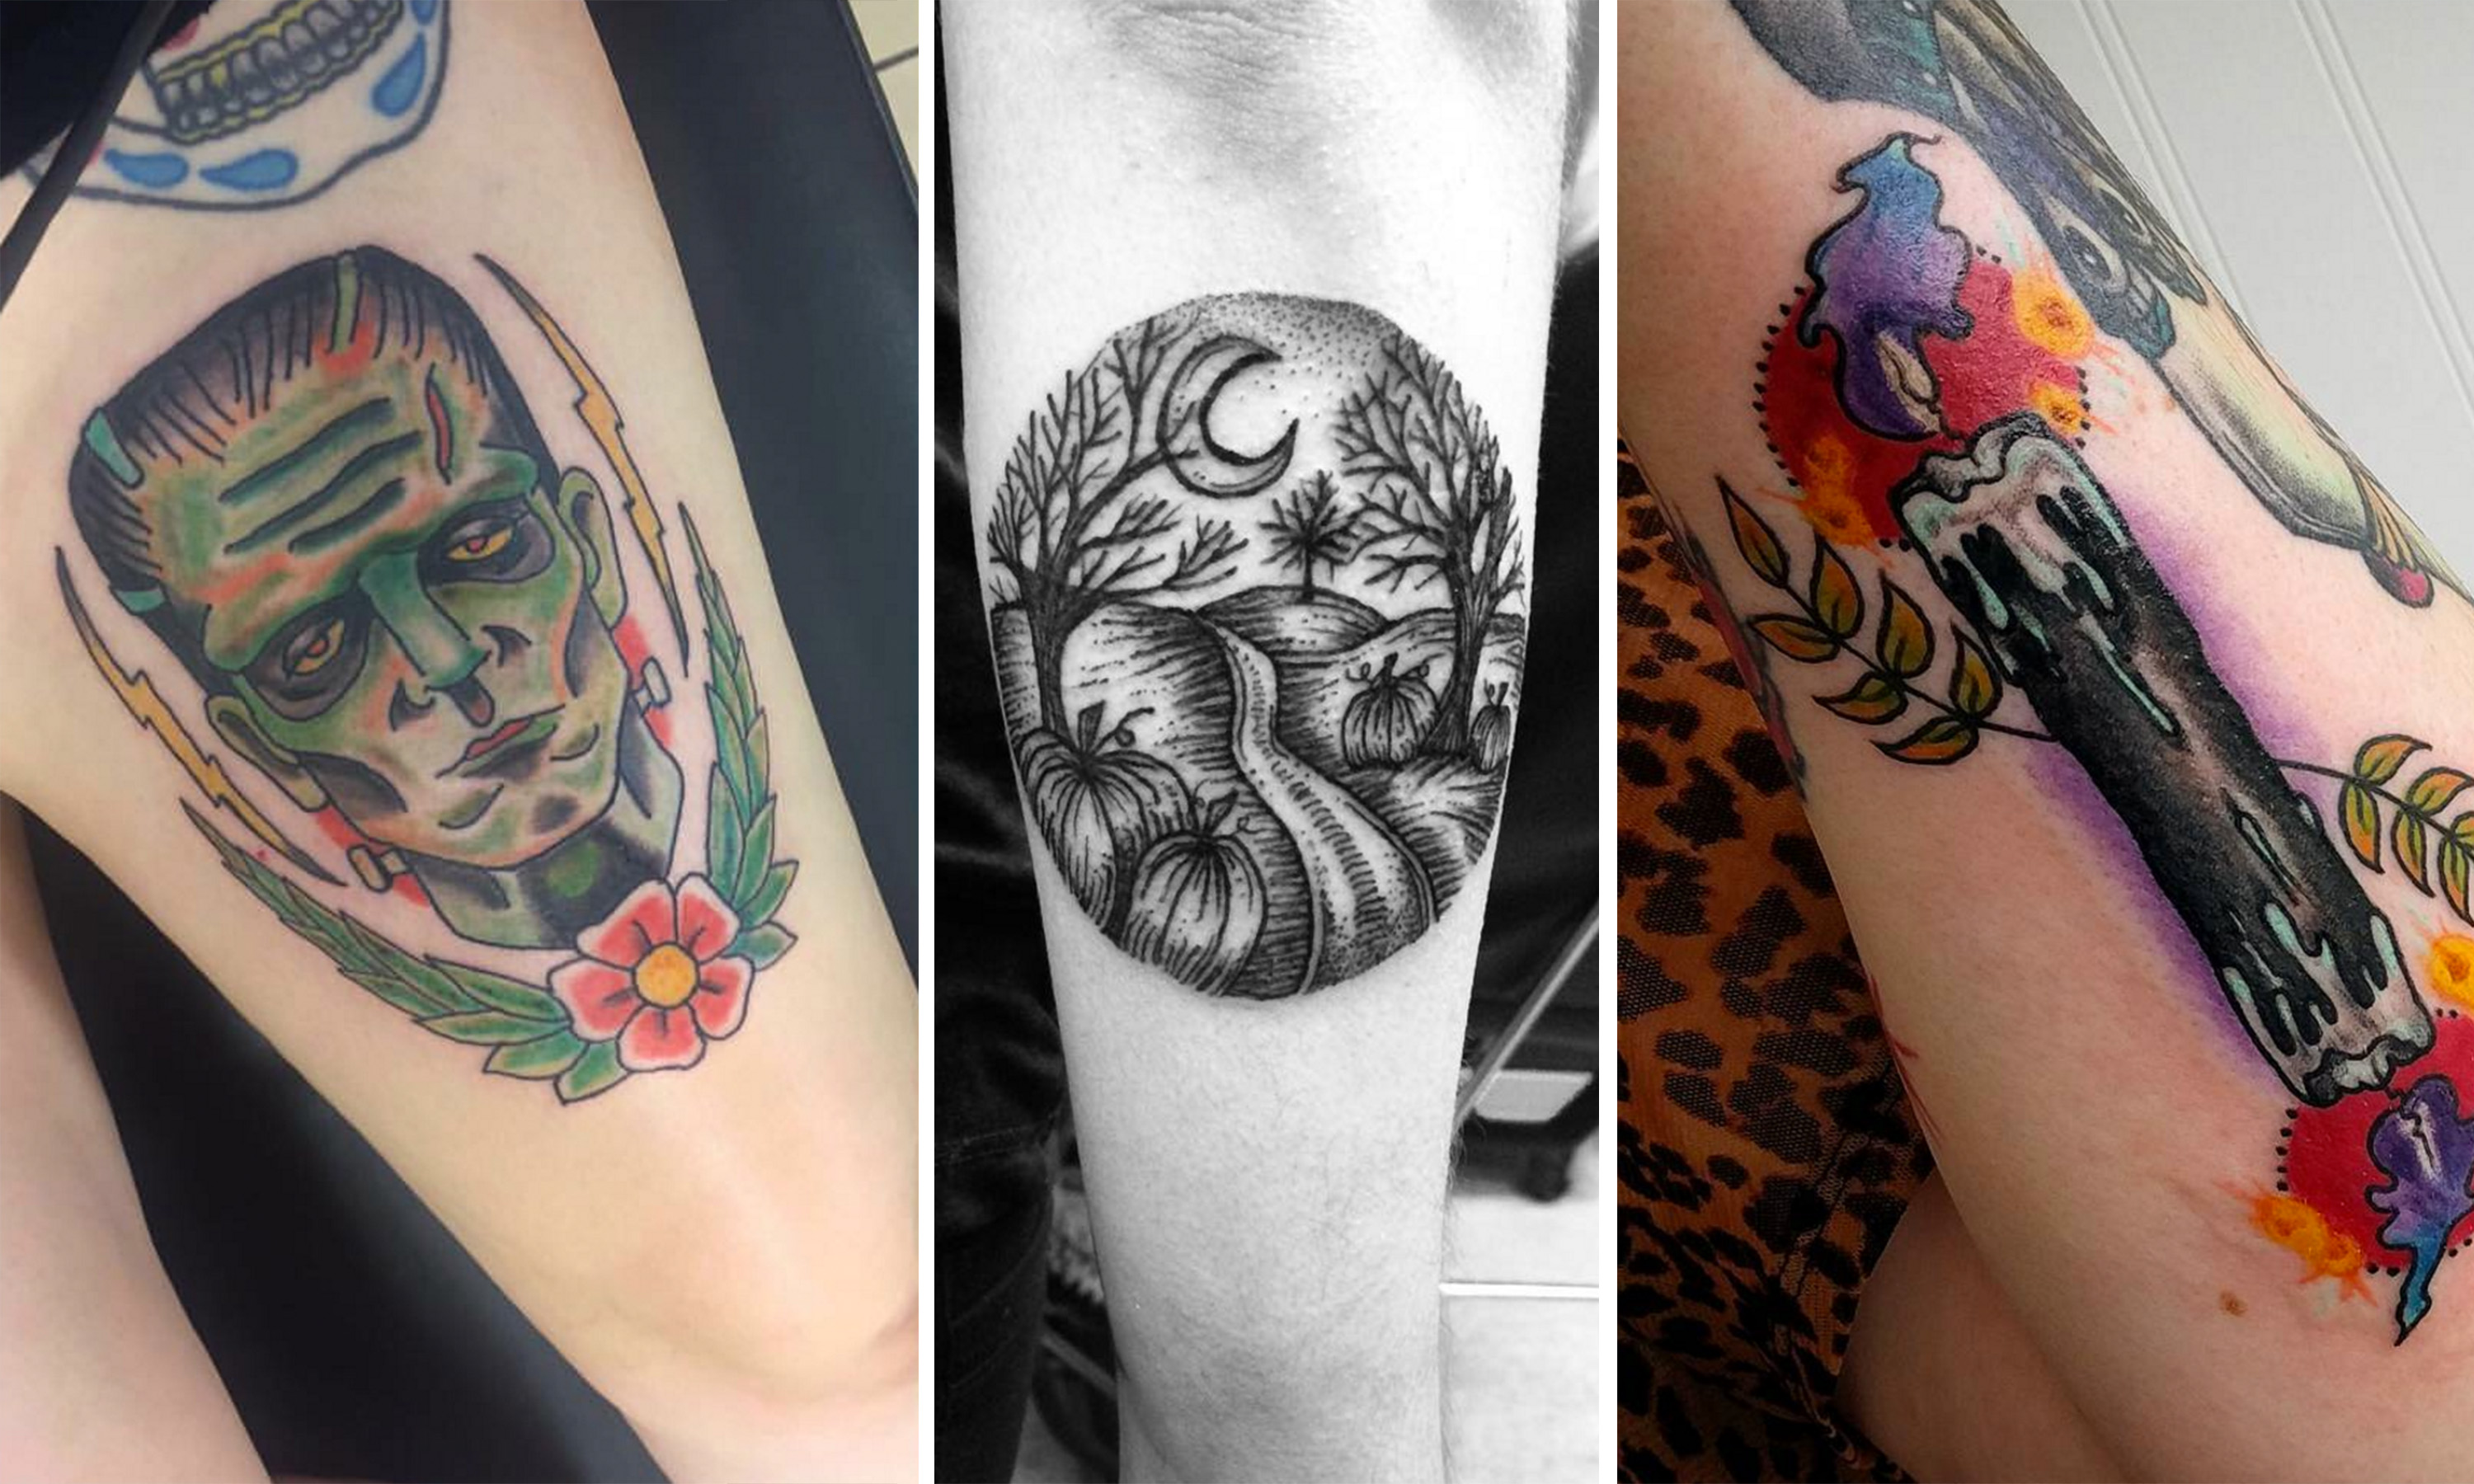 These 13 people love Halloween so much, they got it tattooed on their bodies